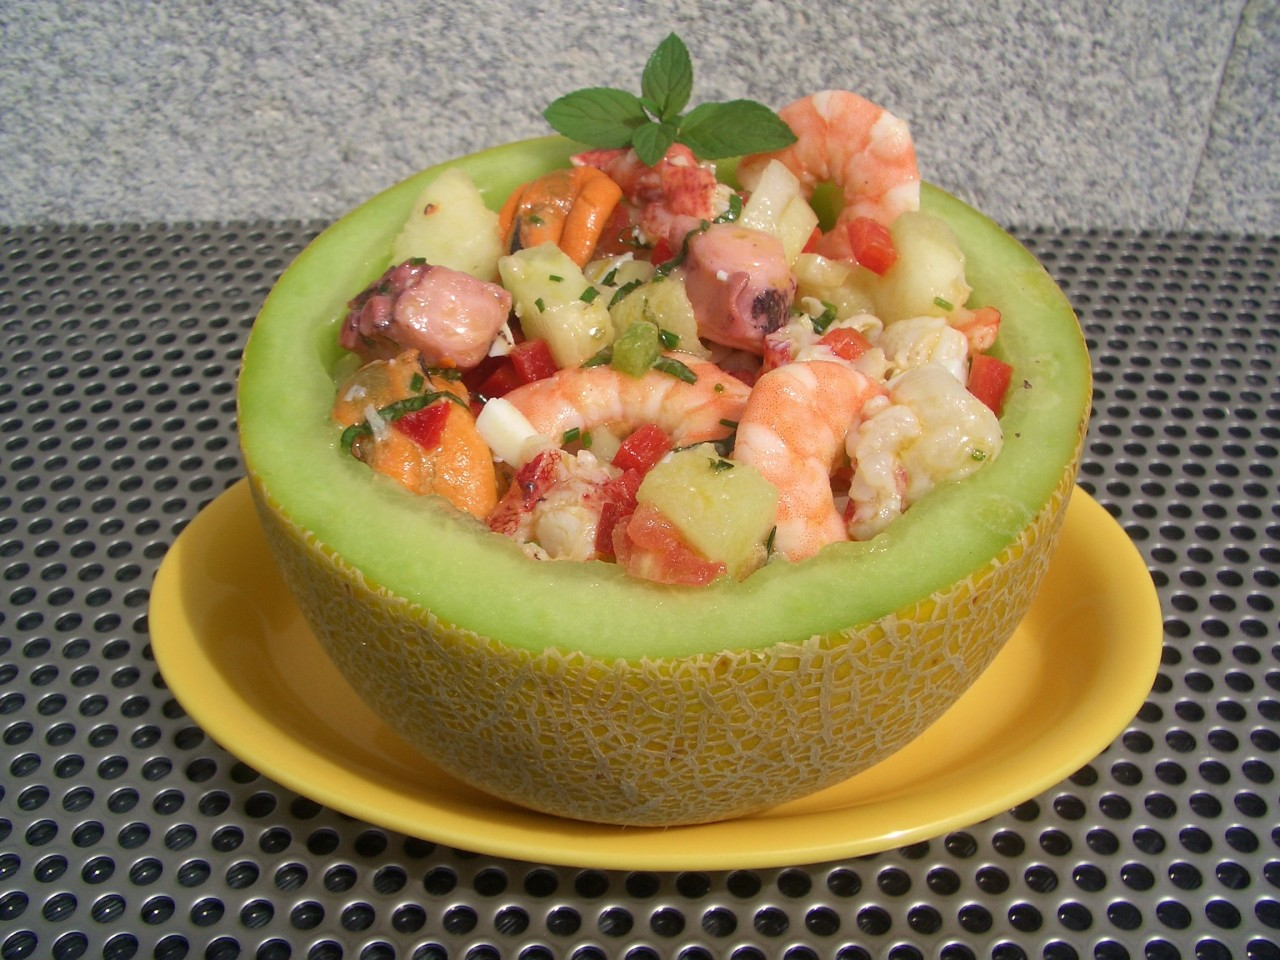 Salpicon de Marisco con Melón – Melon Seafood Cocktail